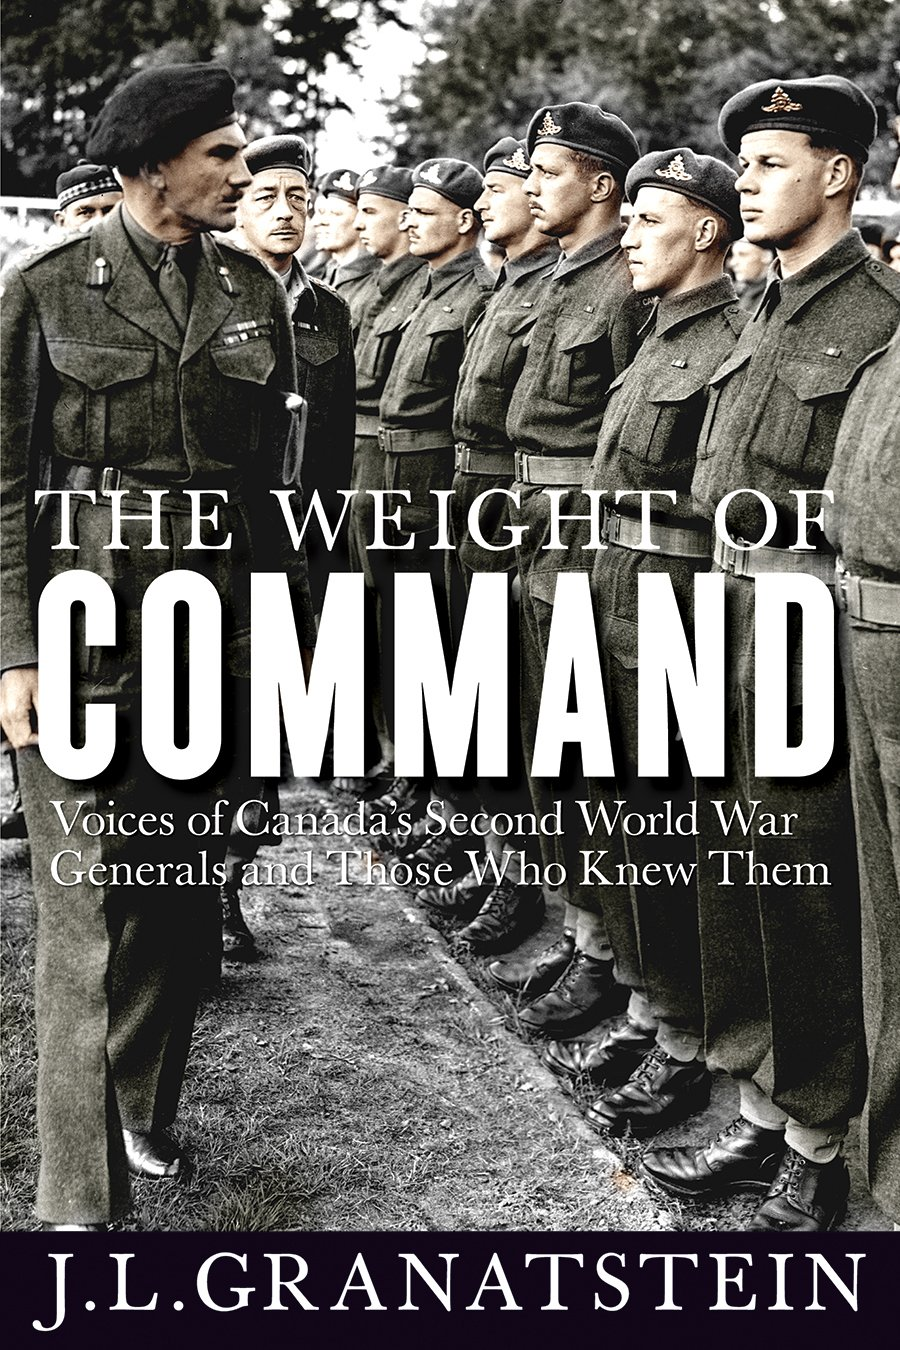 The Weight of Command: Voices of Canada's Second World War Generals and Those Who Knew Them (Studies in Canadian Military History) ebook